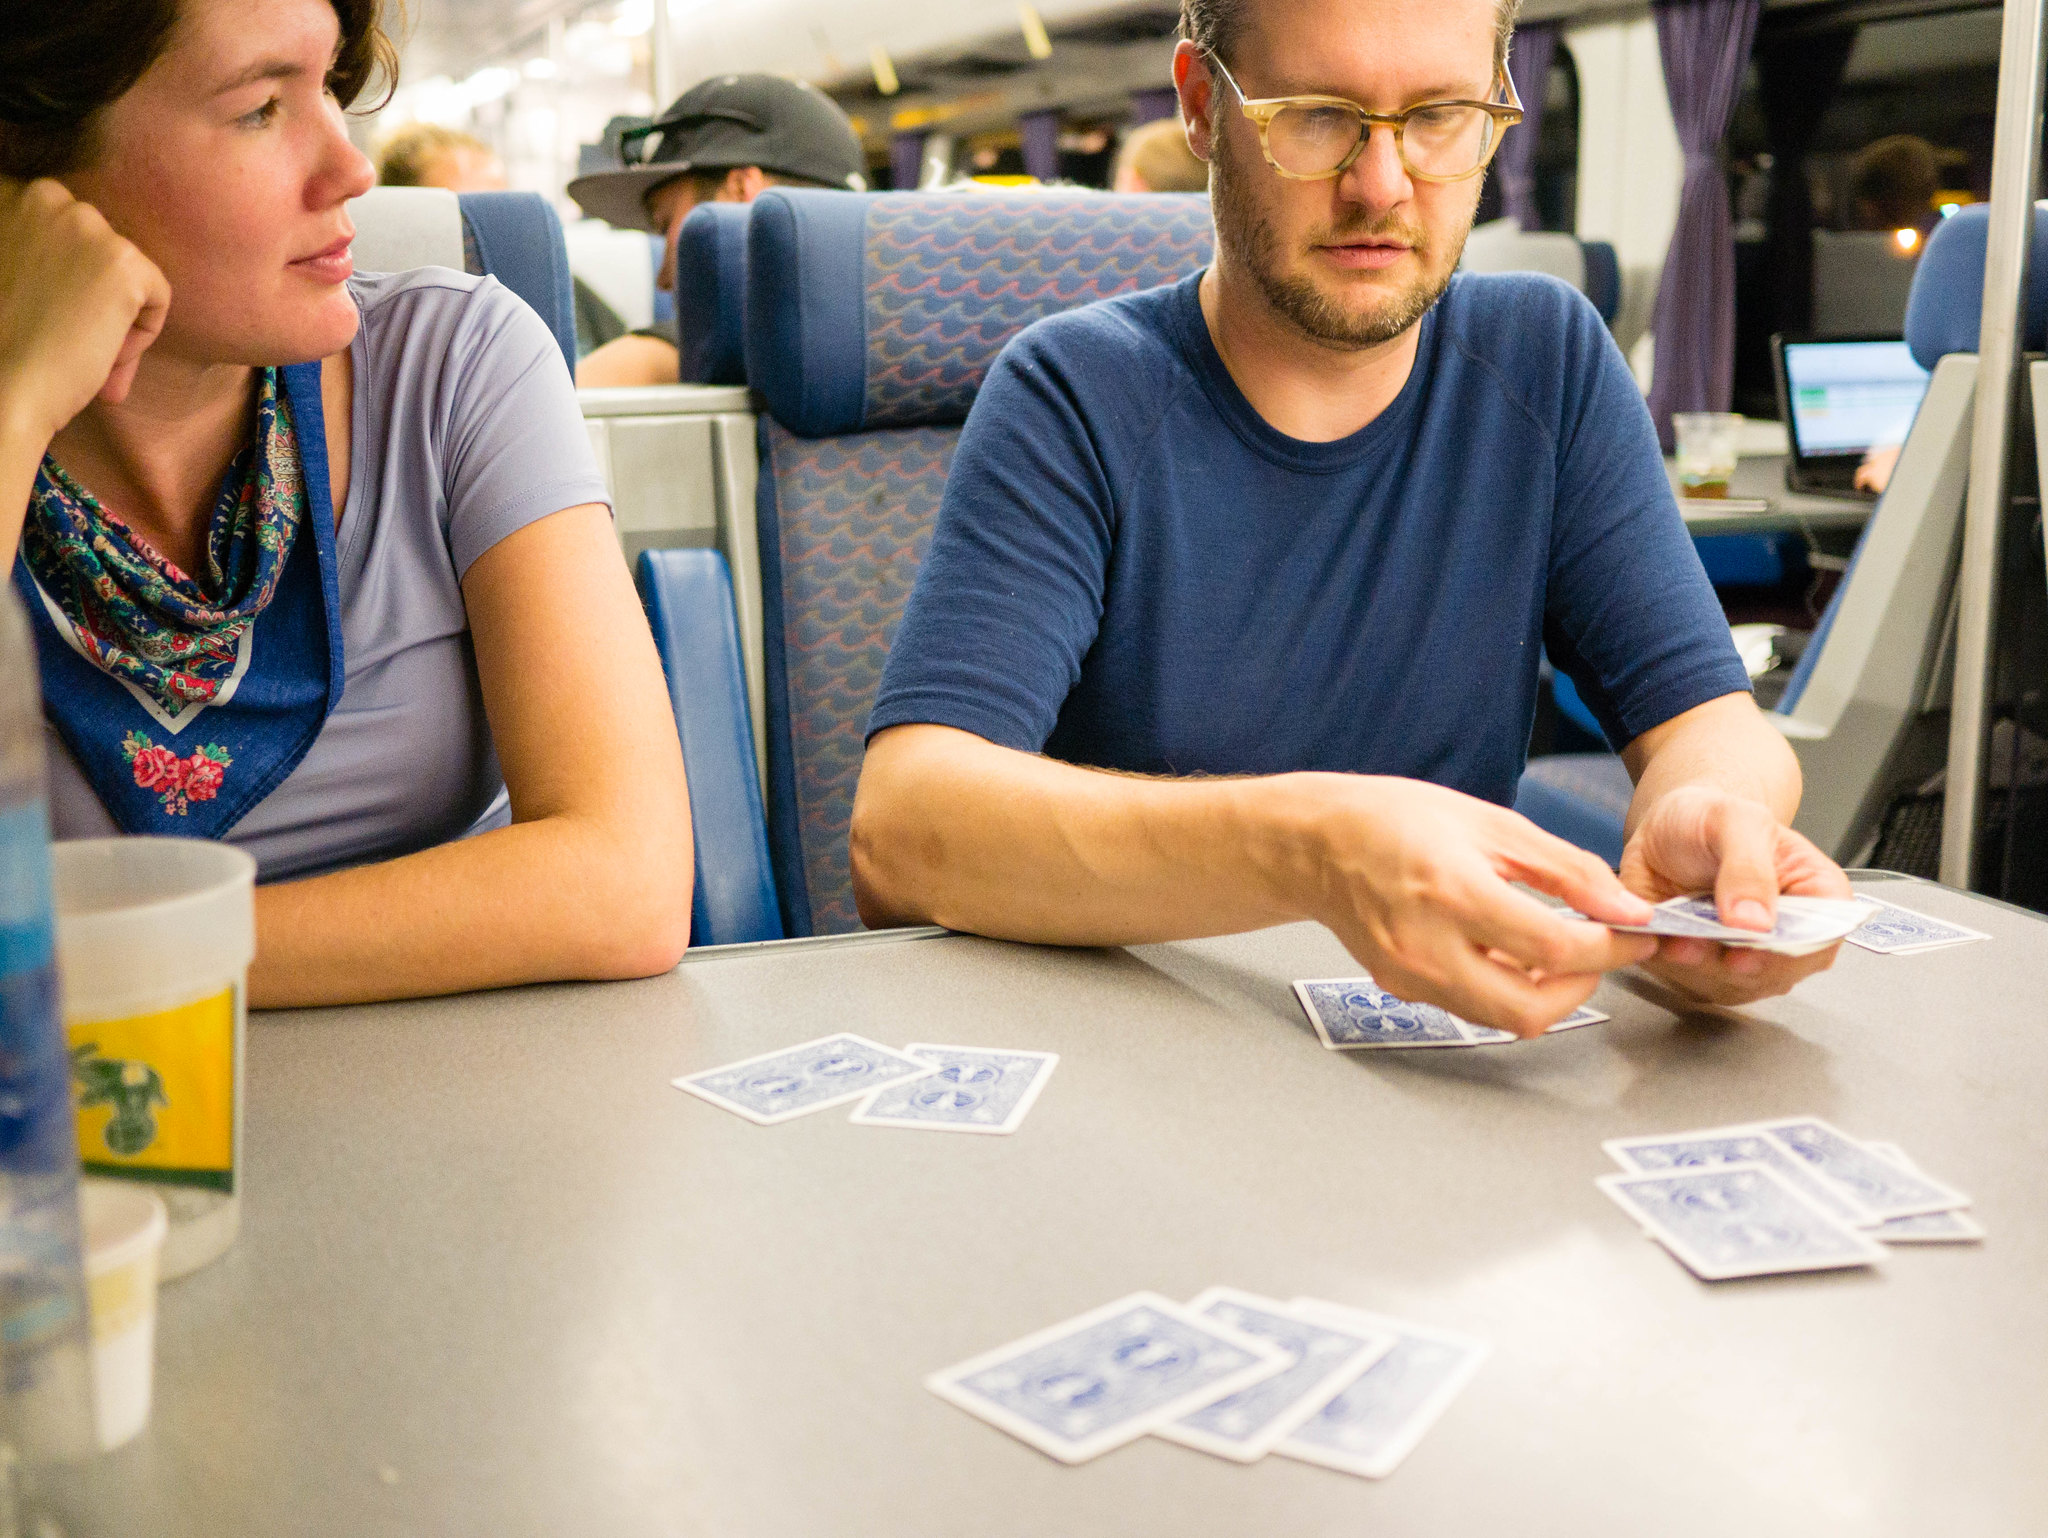 Playing euchre on the train